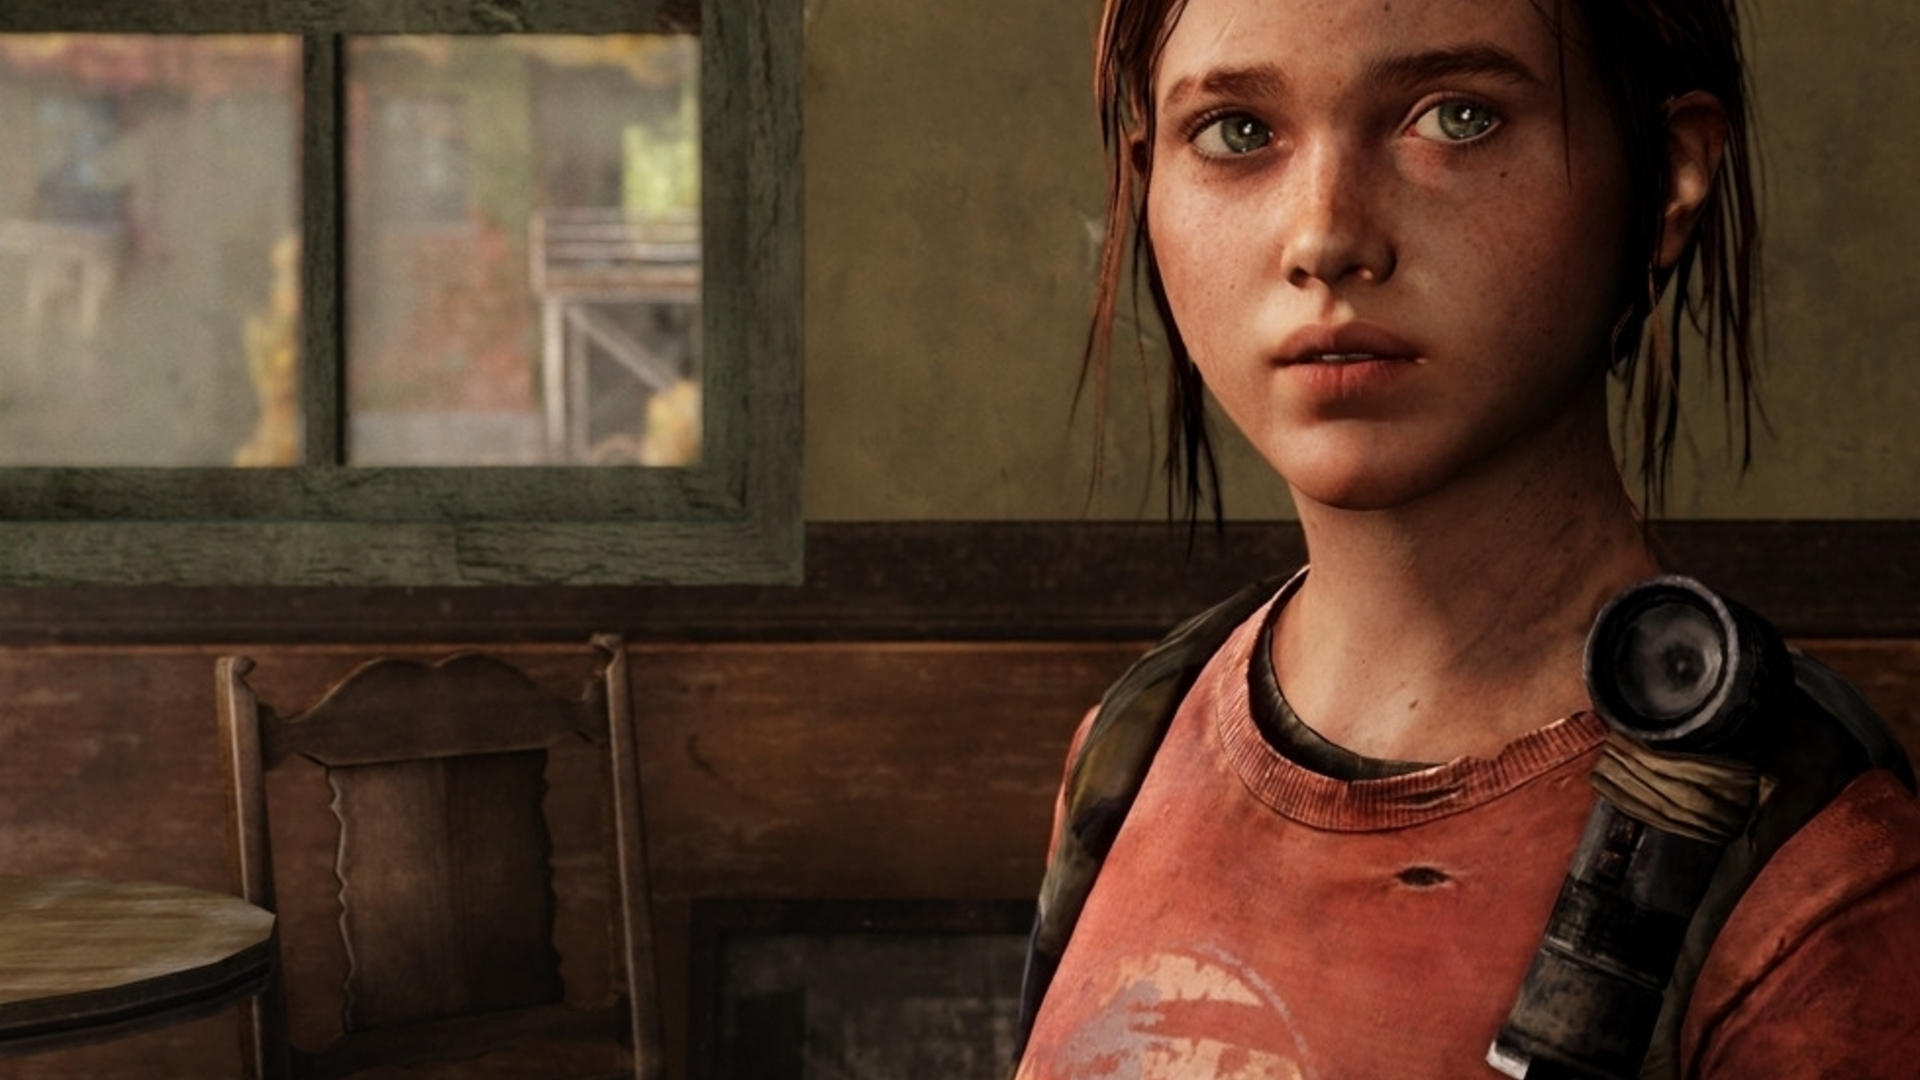 Games of the Generation: The Last of Us